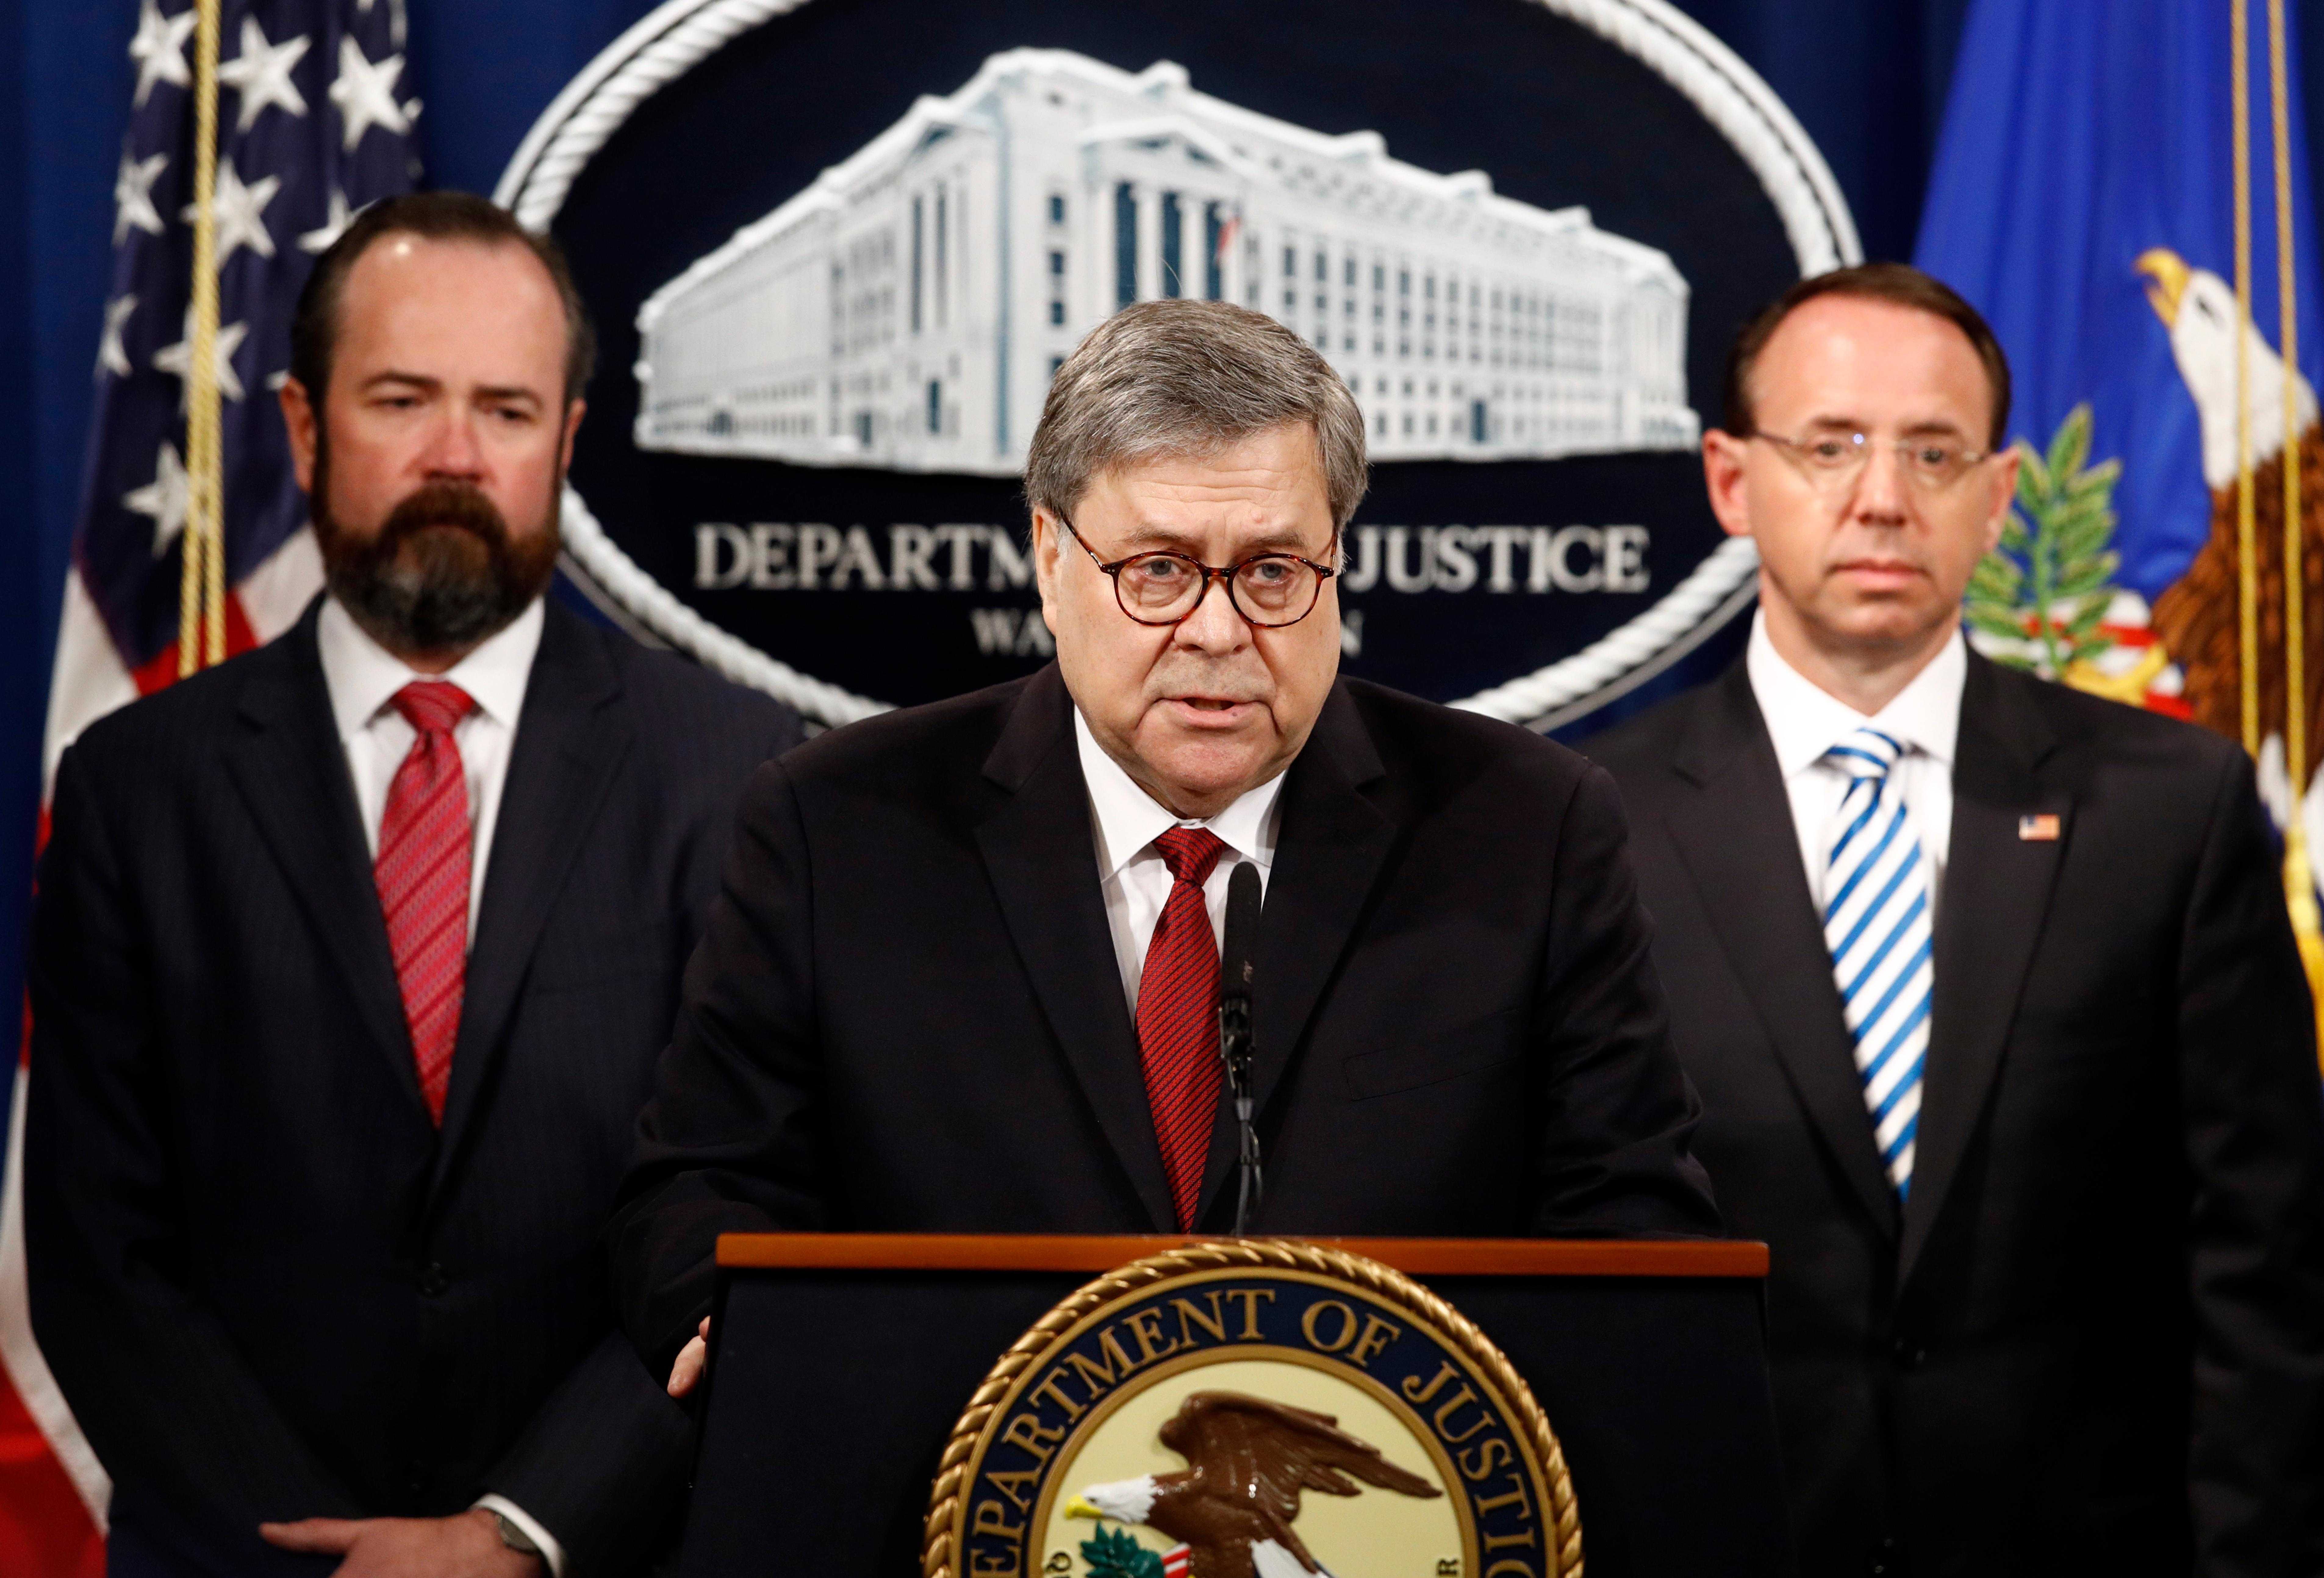 Attorney General William Barr speaks alongside Deputy Attorney General Rod Rosenstein, right, and acting Principal Associate Deputy Attorney General Edward O'Callaghan, left, about the release of a redacted version of special counsel Robert Mueller's report during a news conference, Thursday, April 18, 2019, at the Department of Justice in Washington. (AP Photo/Patrick Semansky)